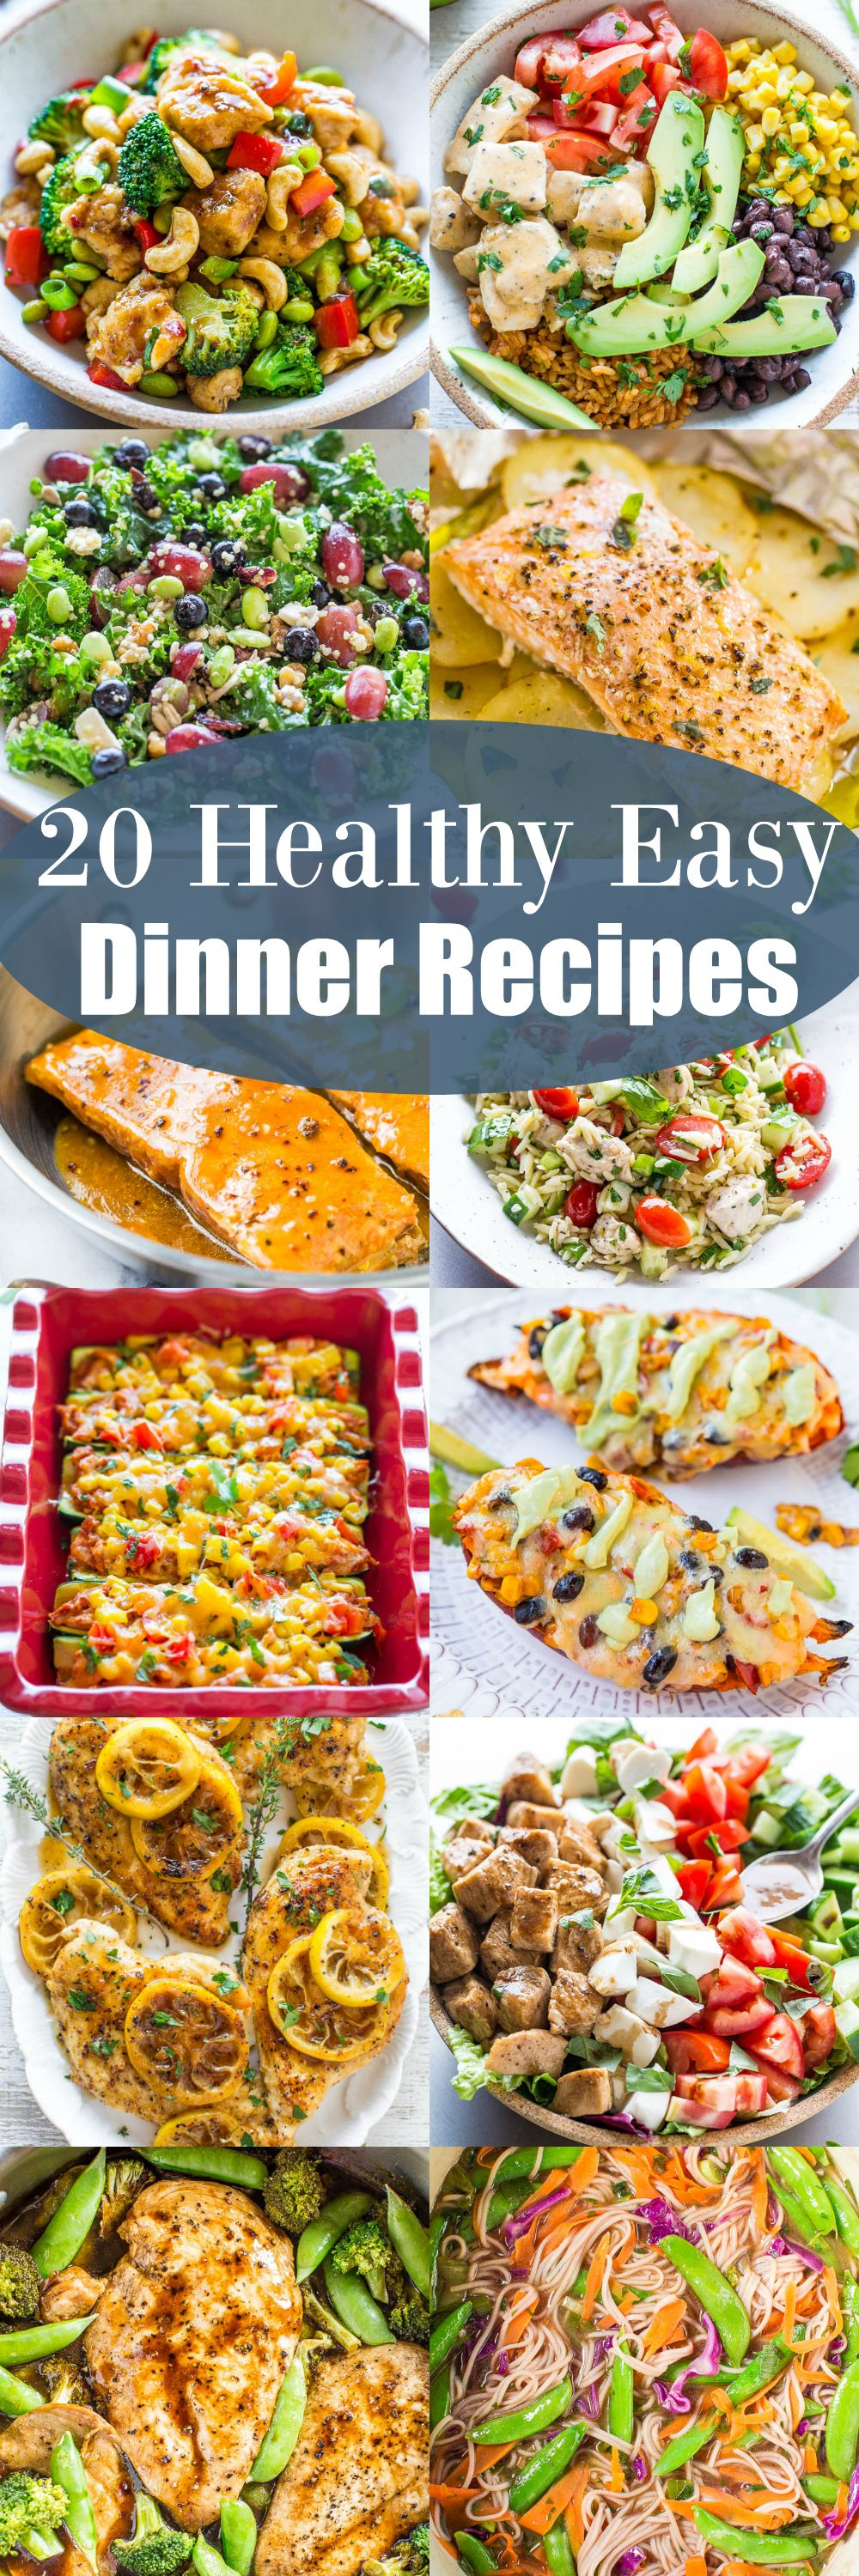 20 Healthy Easy Dinner Recipes